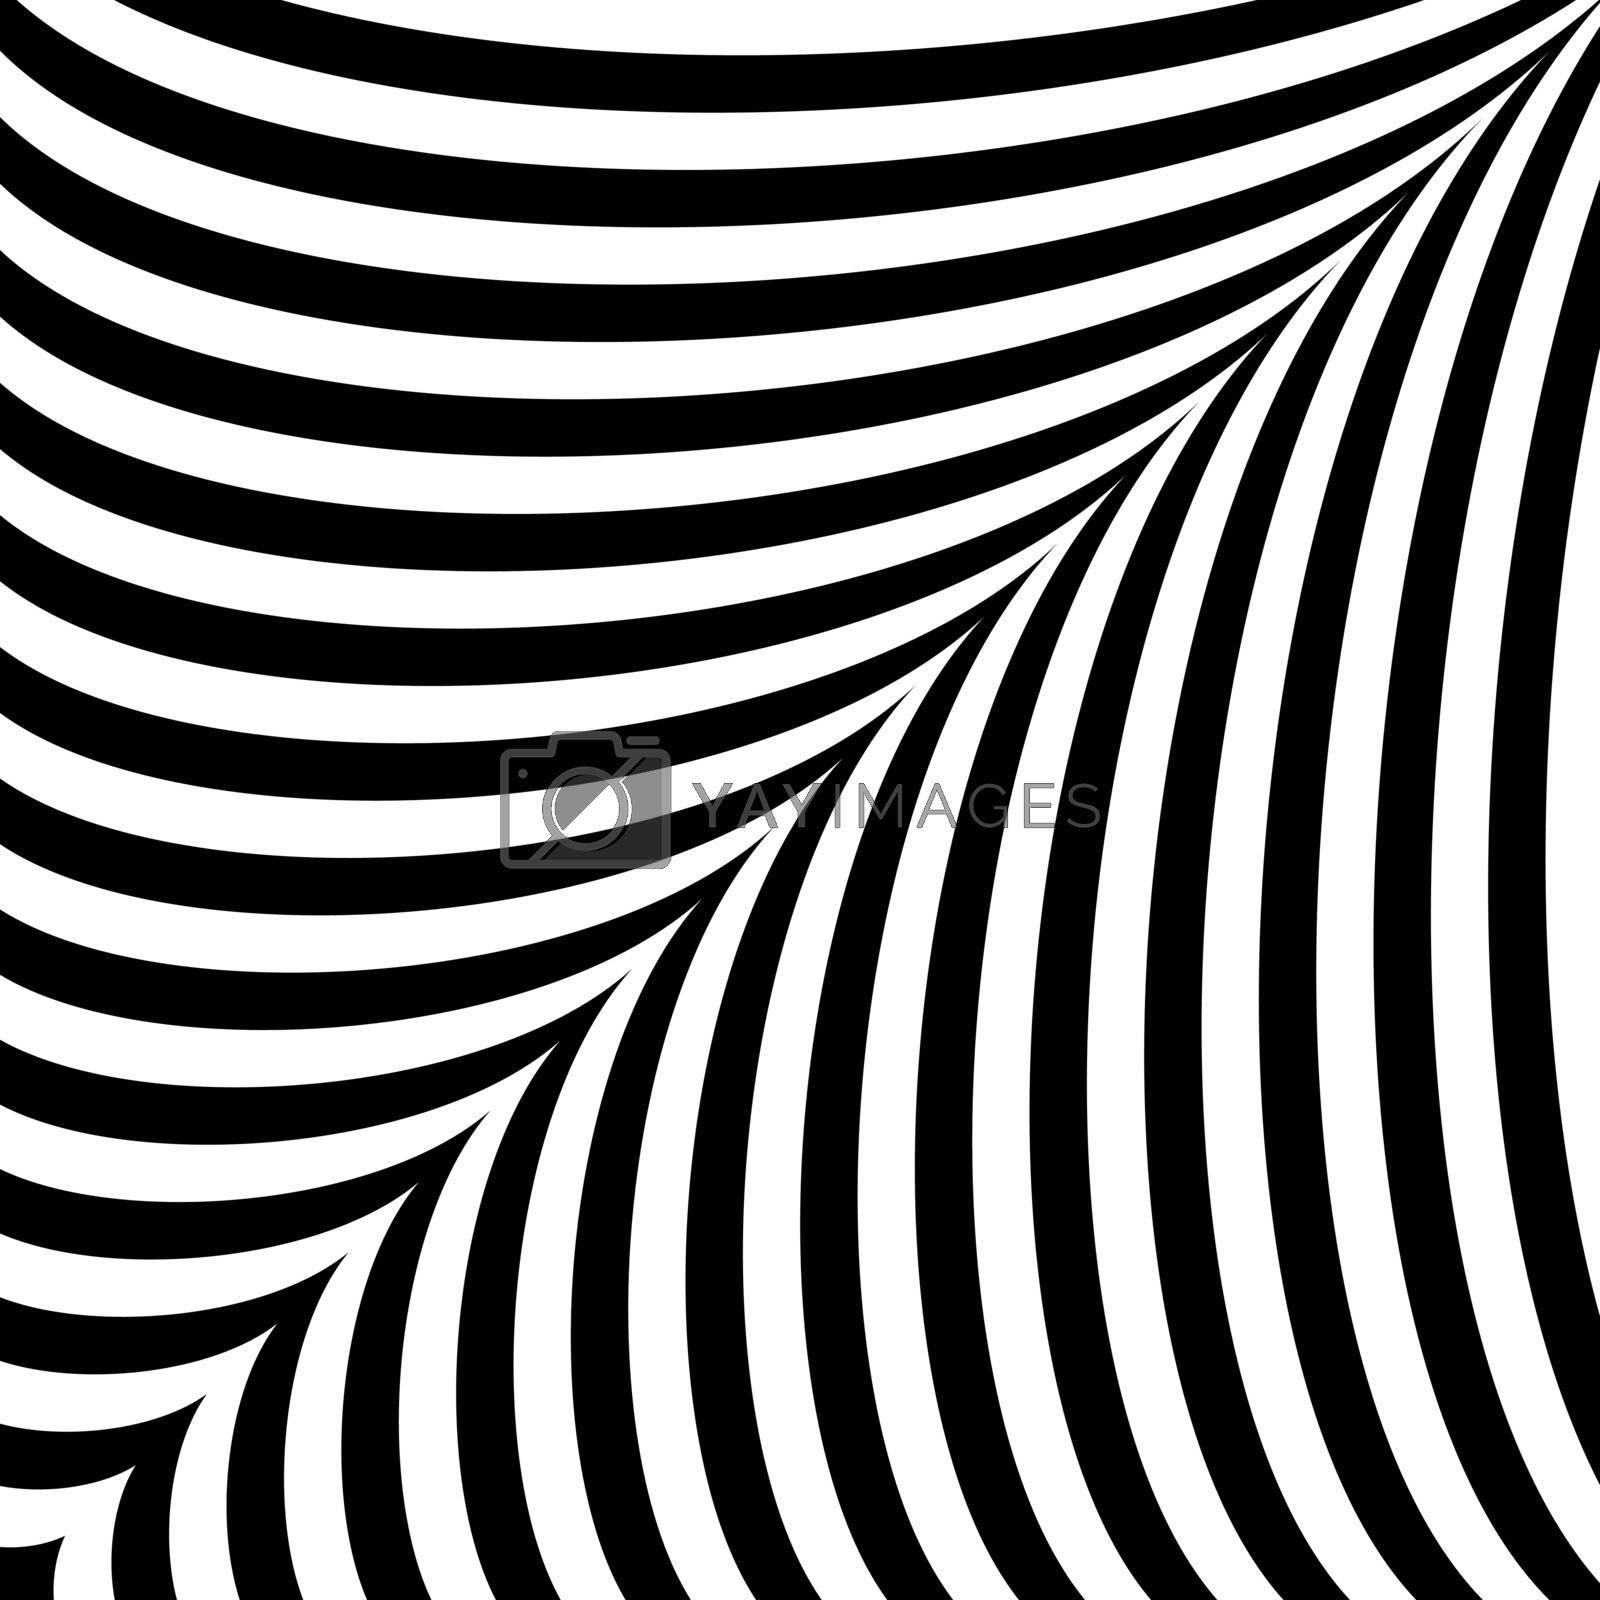 Black and white abstract background with curves symmetrical stripes.